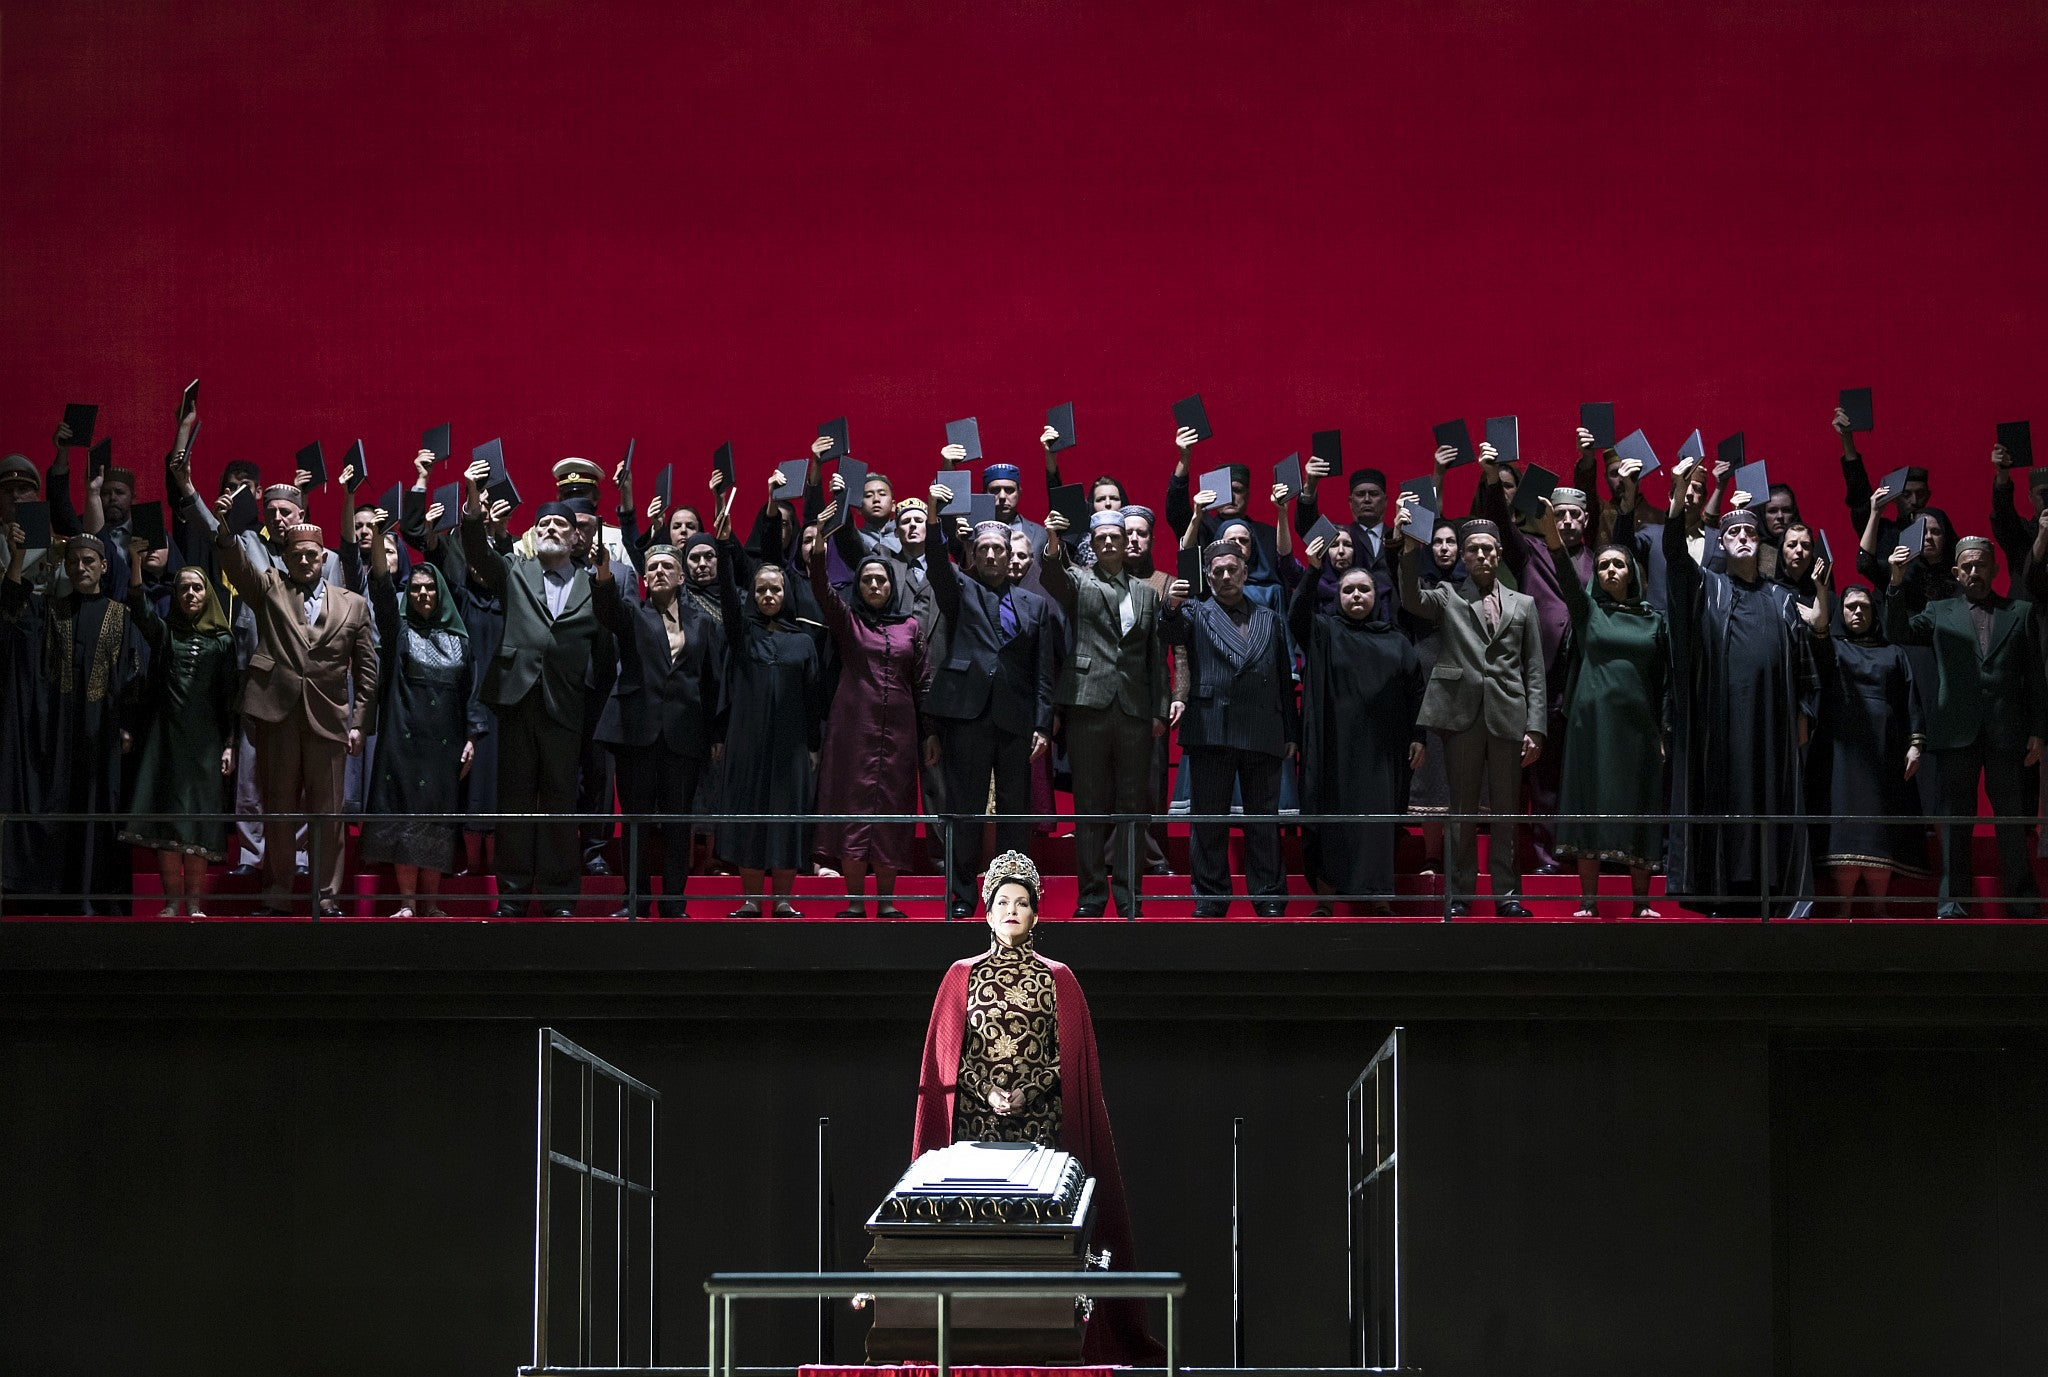 Semiramide, Royal Opera House, London, review: stunning music, but a problematic plot